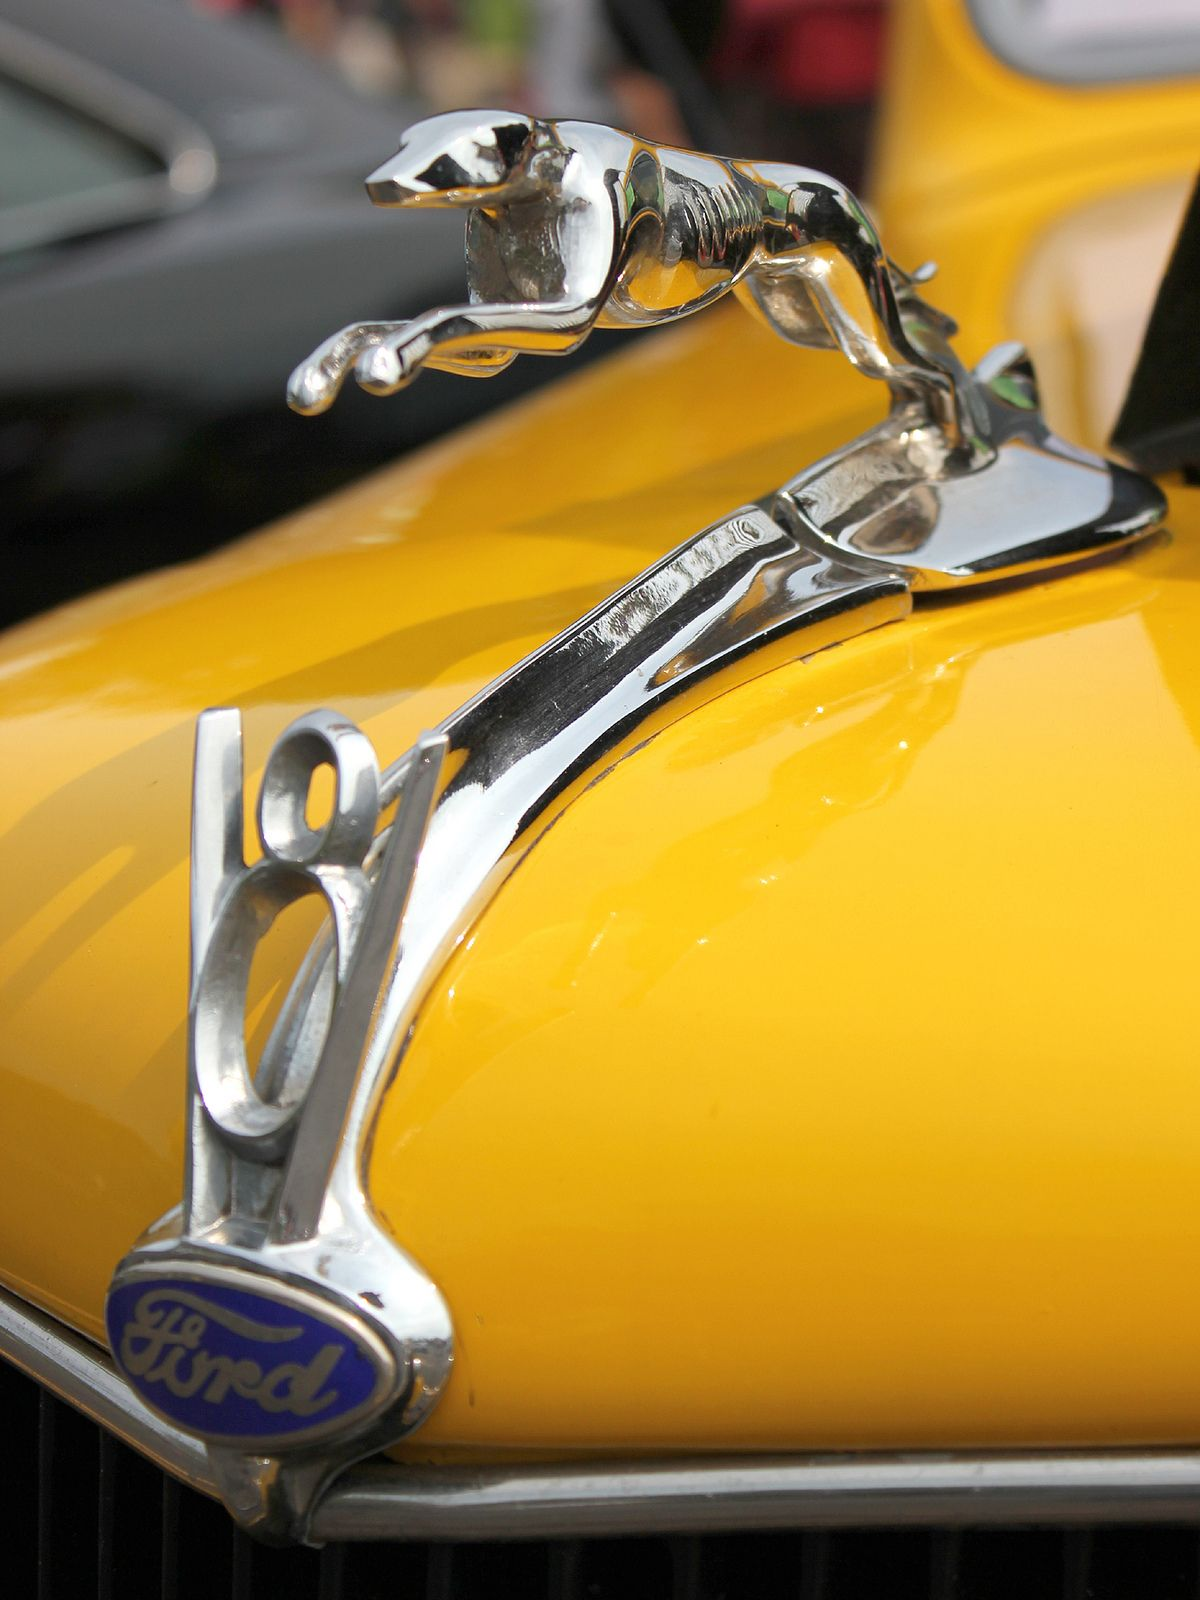 Greyhound Hood Ornament From A 1930s Ford V8 Hood Ornaments